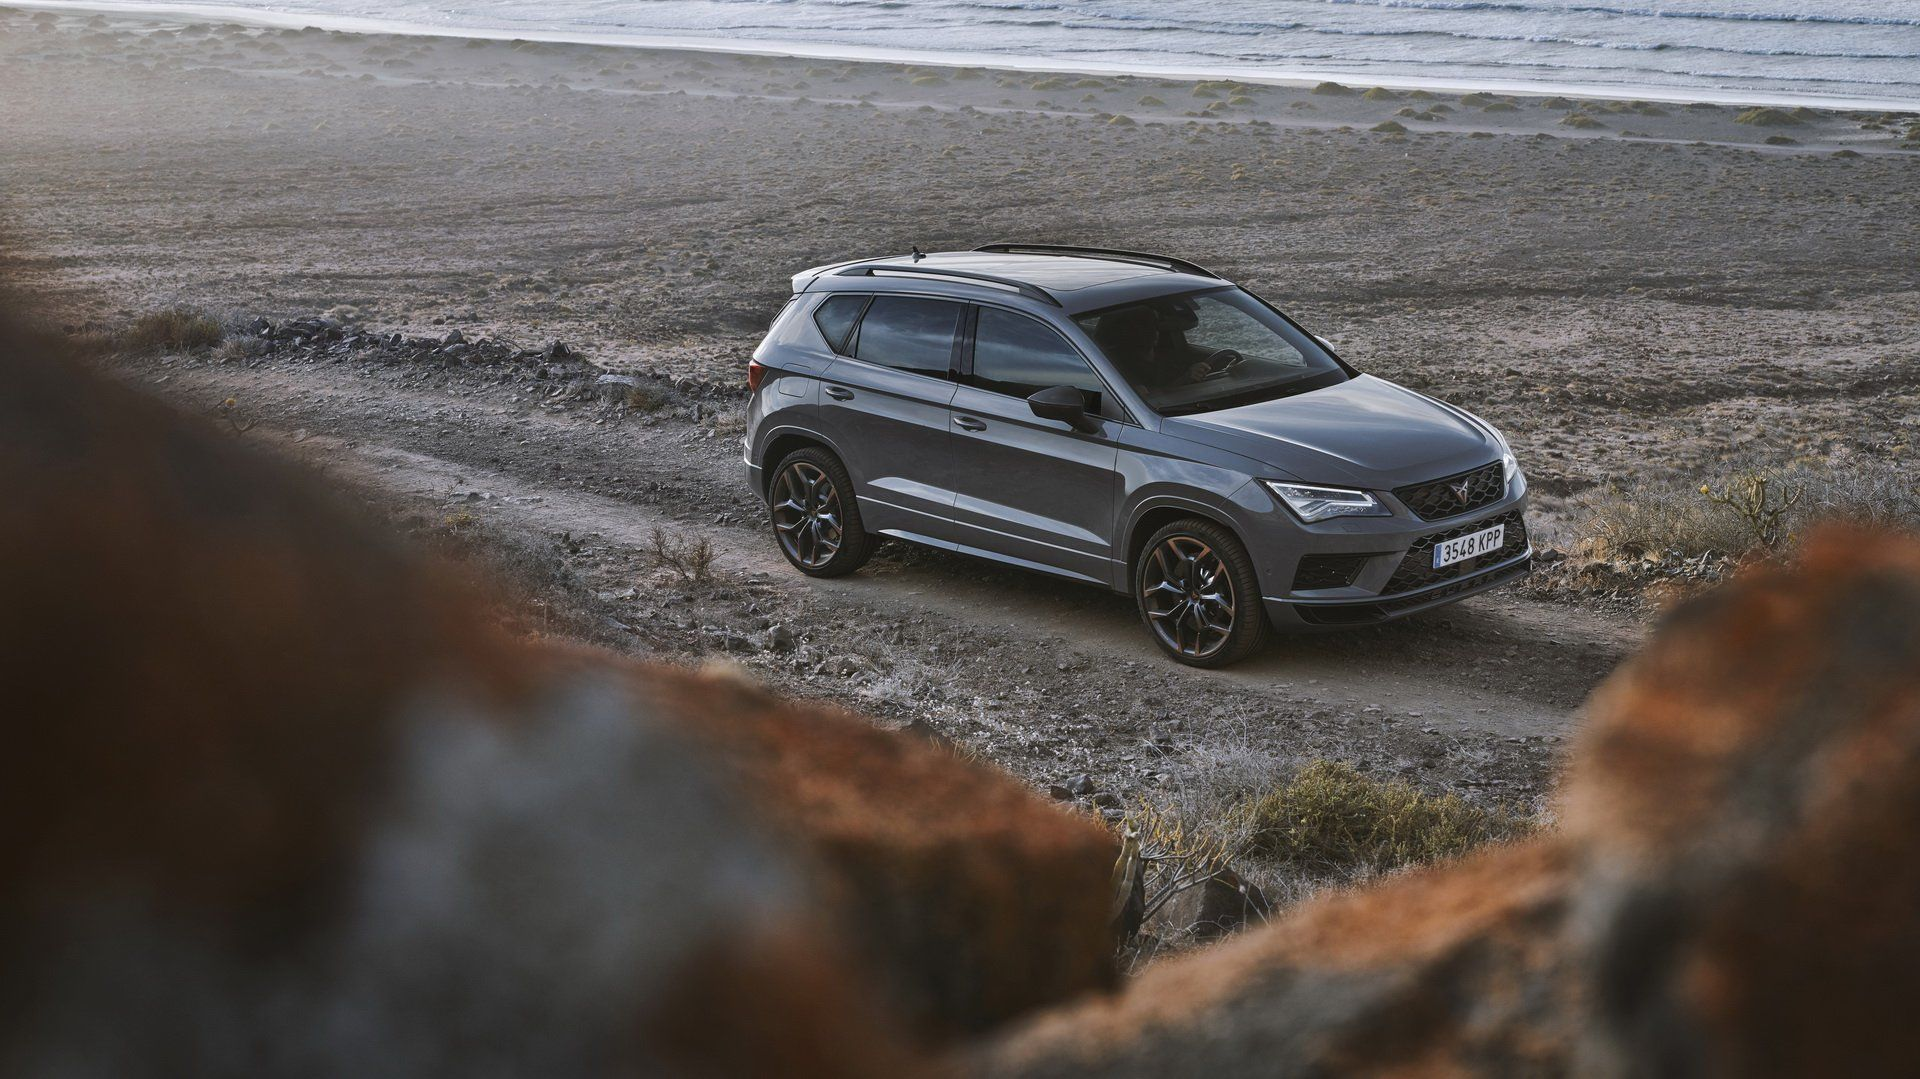 Cupra-Ateca-Limited-Edition-1